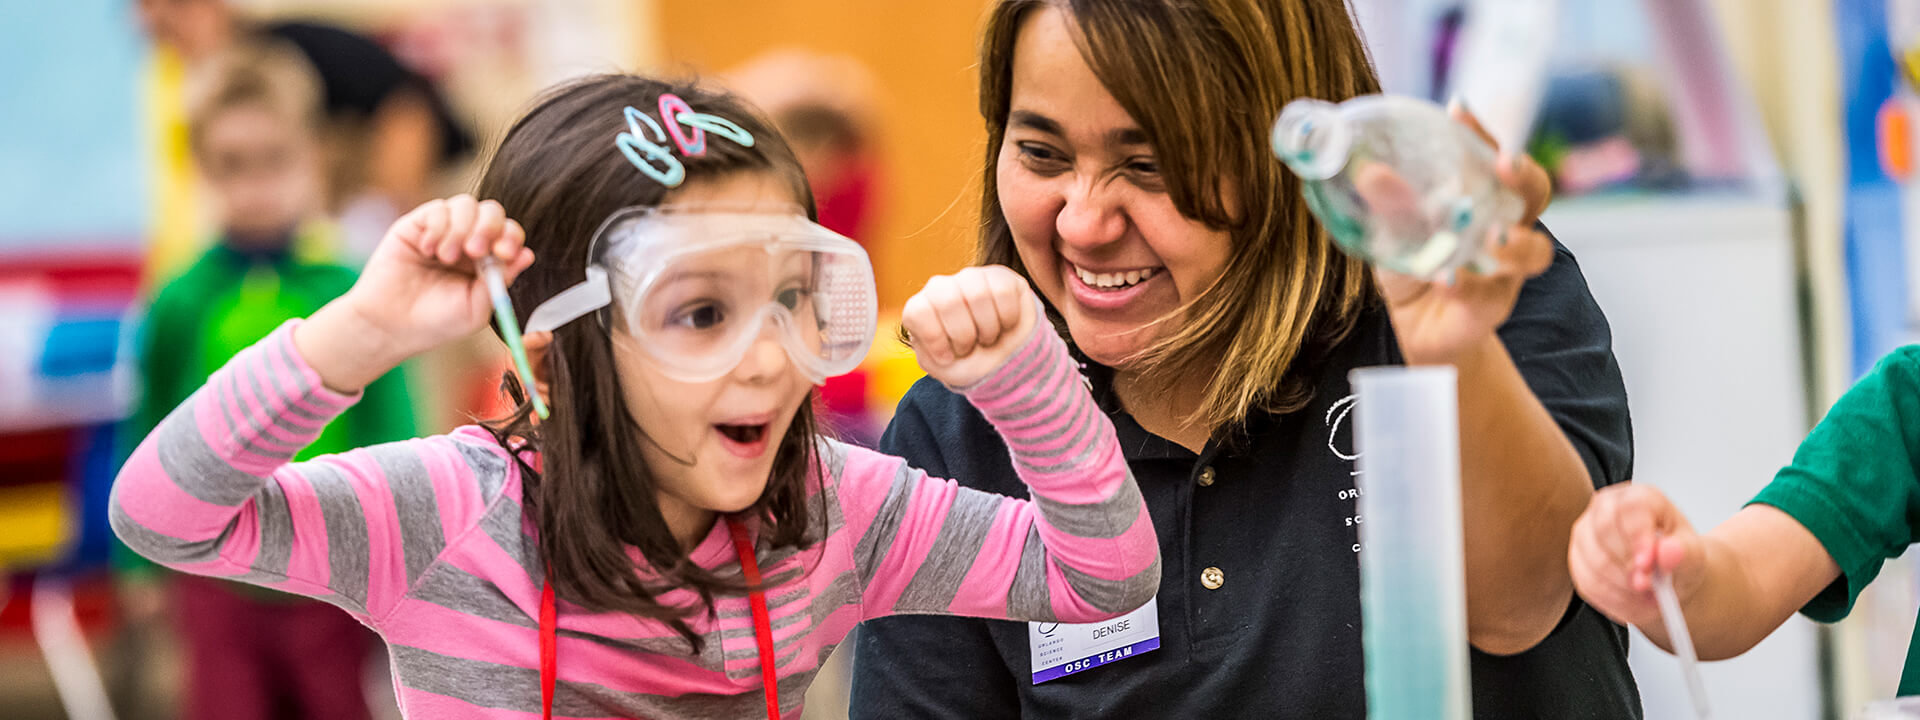 A preschool student shows her excitement during a chemistry experiment.